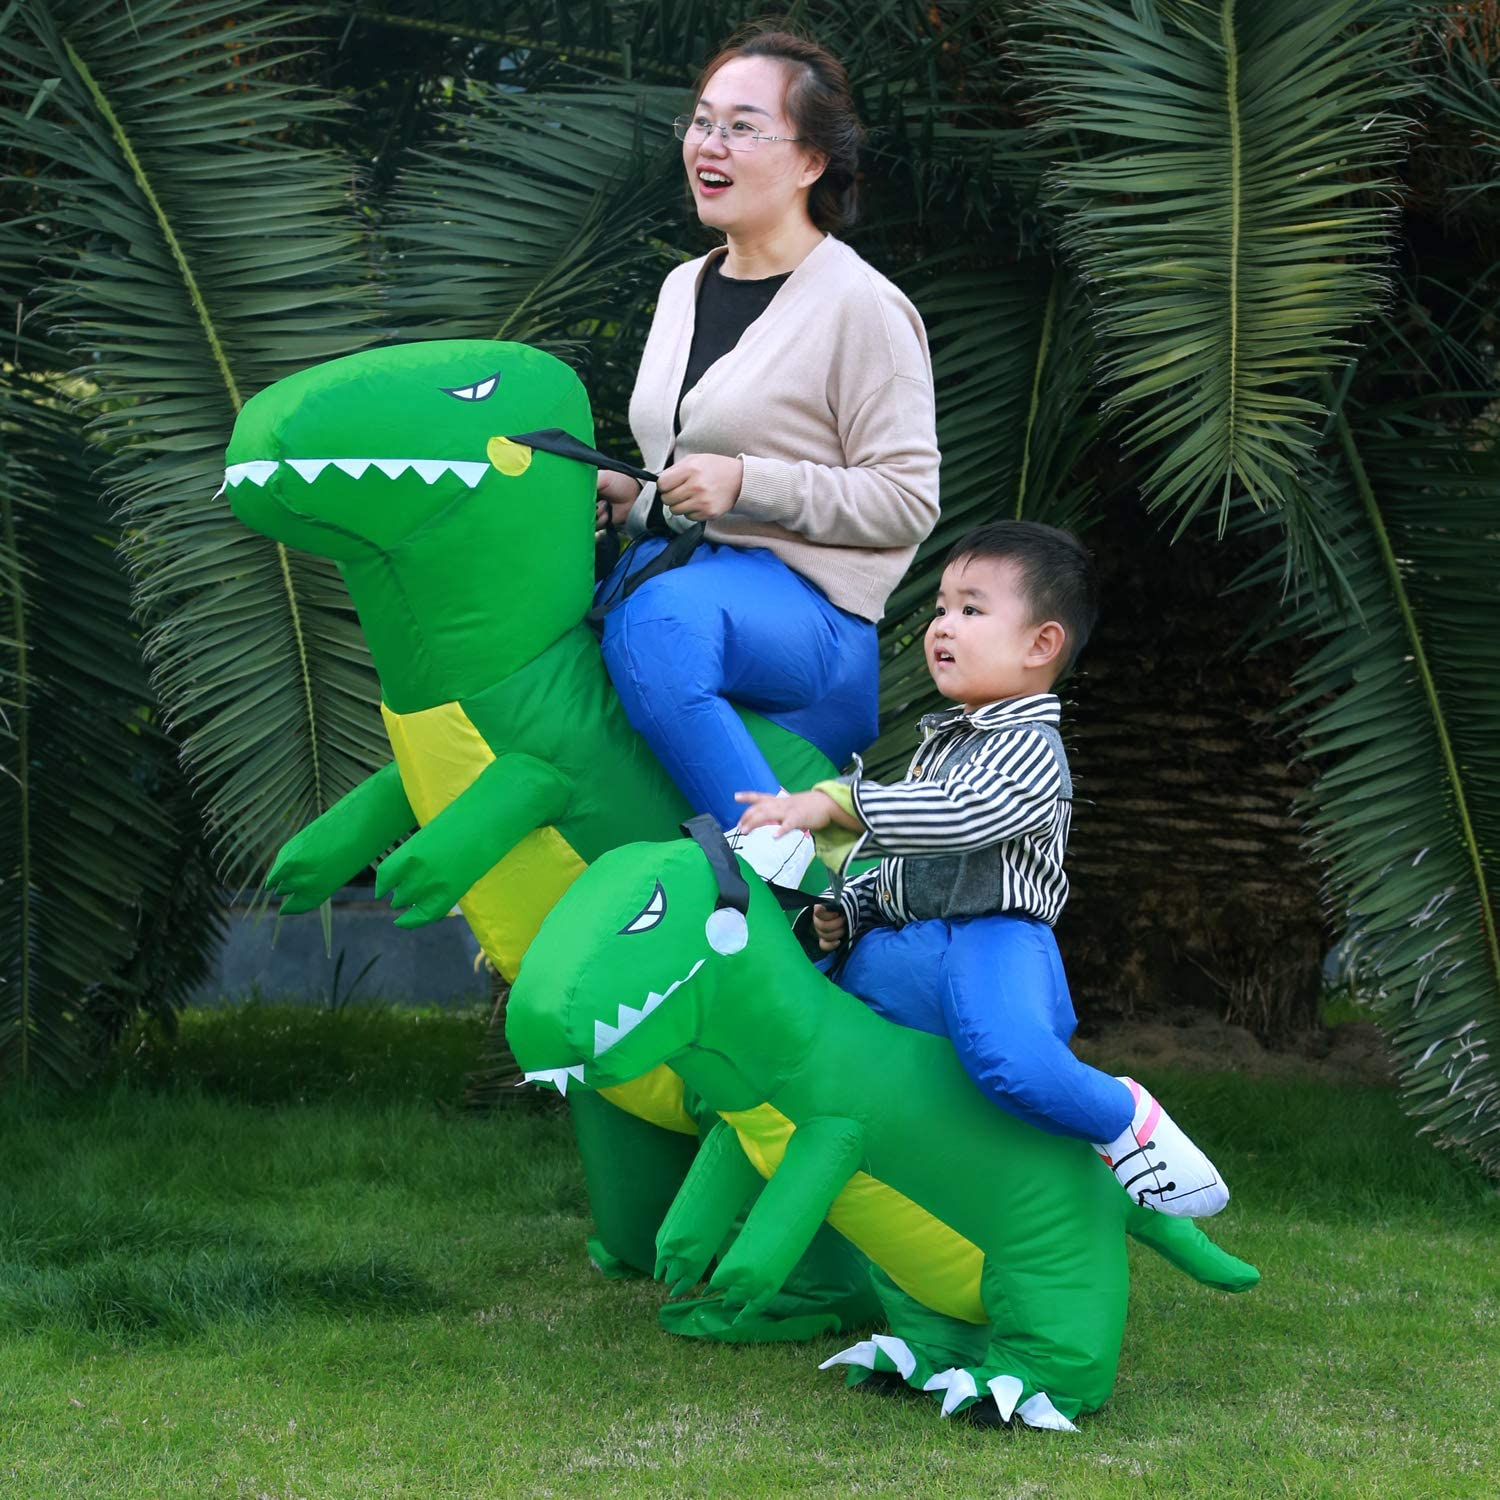 Adult Green Halloween T-Rex Costume Inflatable Dinosaur Suit Halloween Dino Theme Party Dress Blow Up Costume Adult//Child